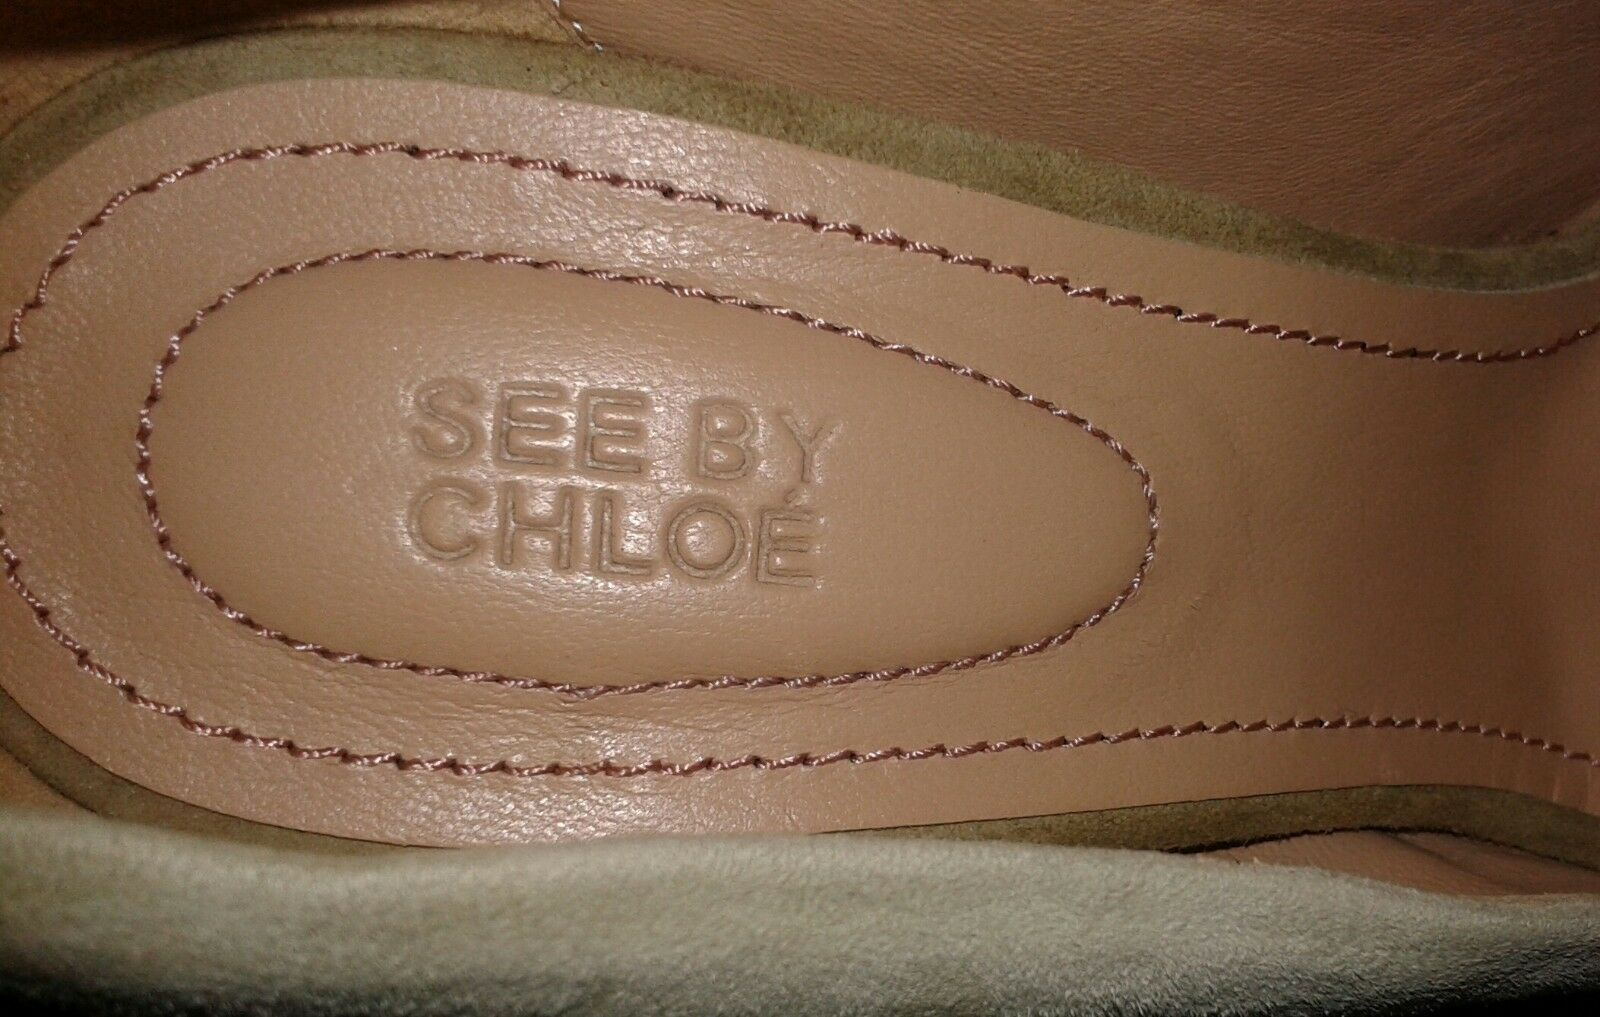 See By Chloé 100% Suede Sandals EUR - UK 3 / EUR Sandals 36 a3b0f5